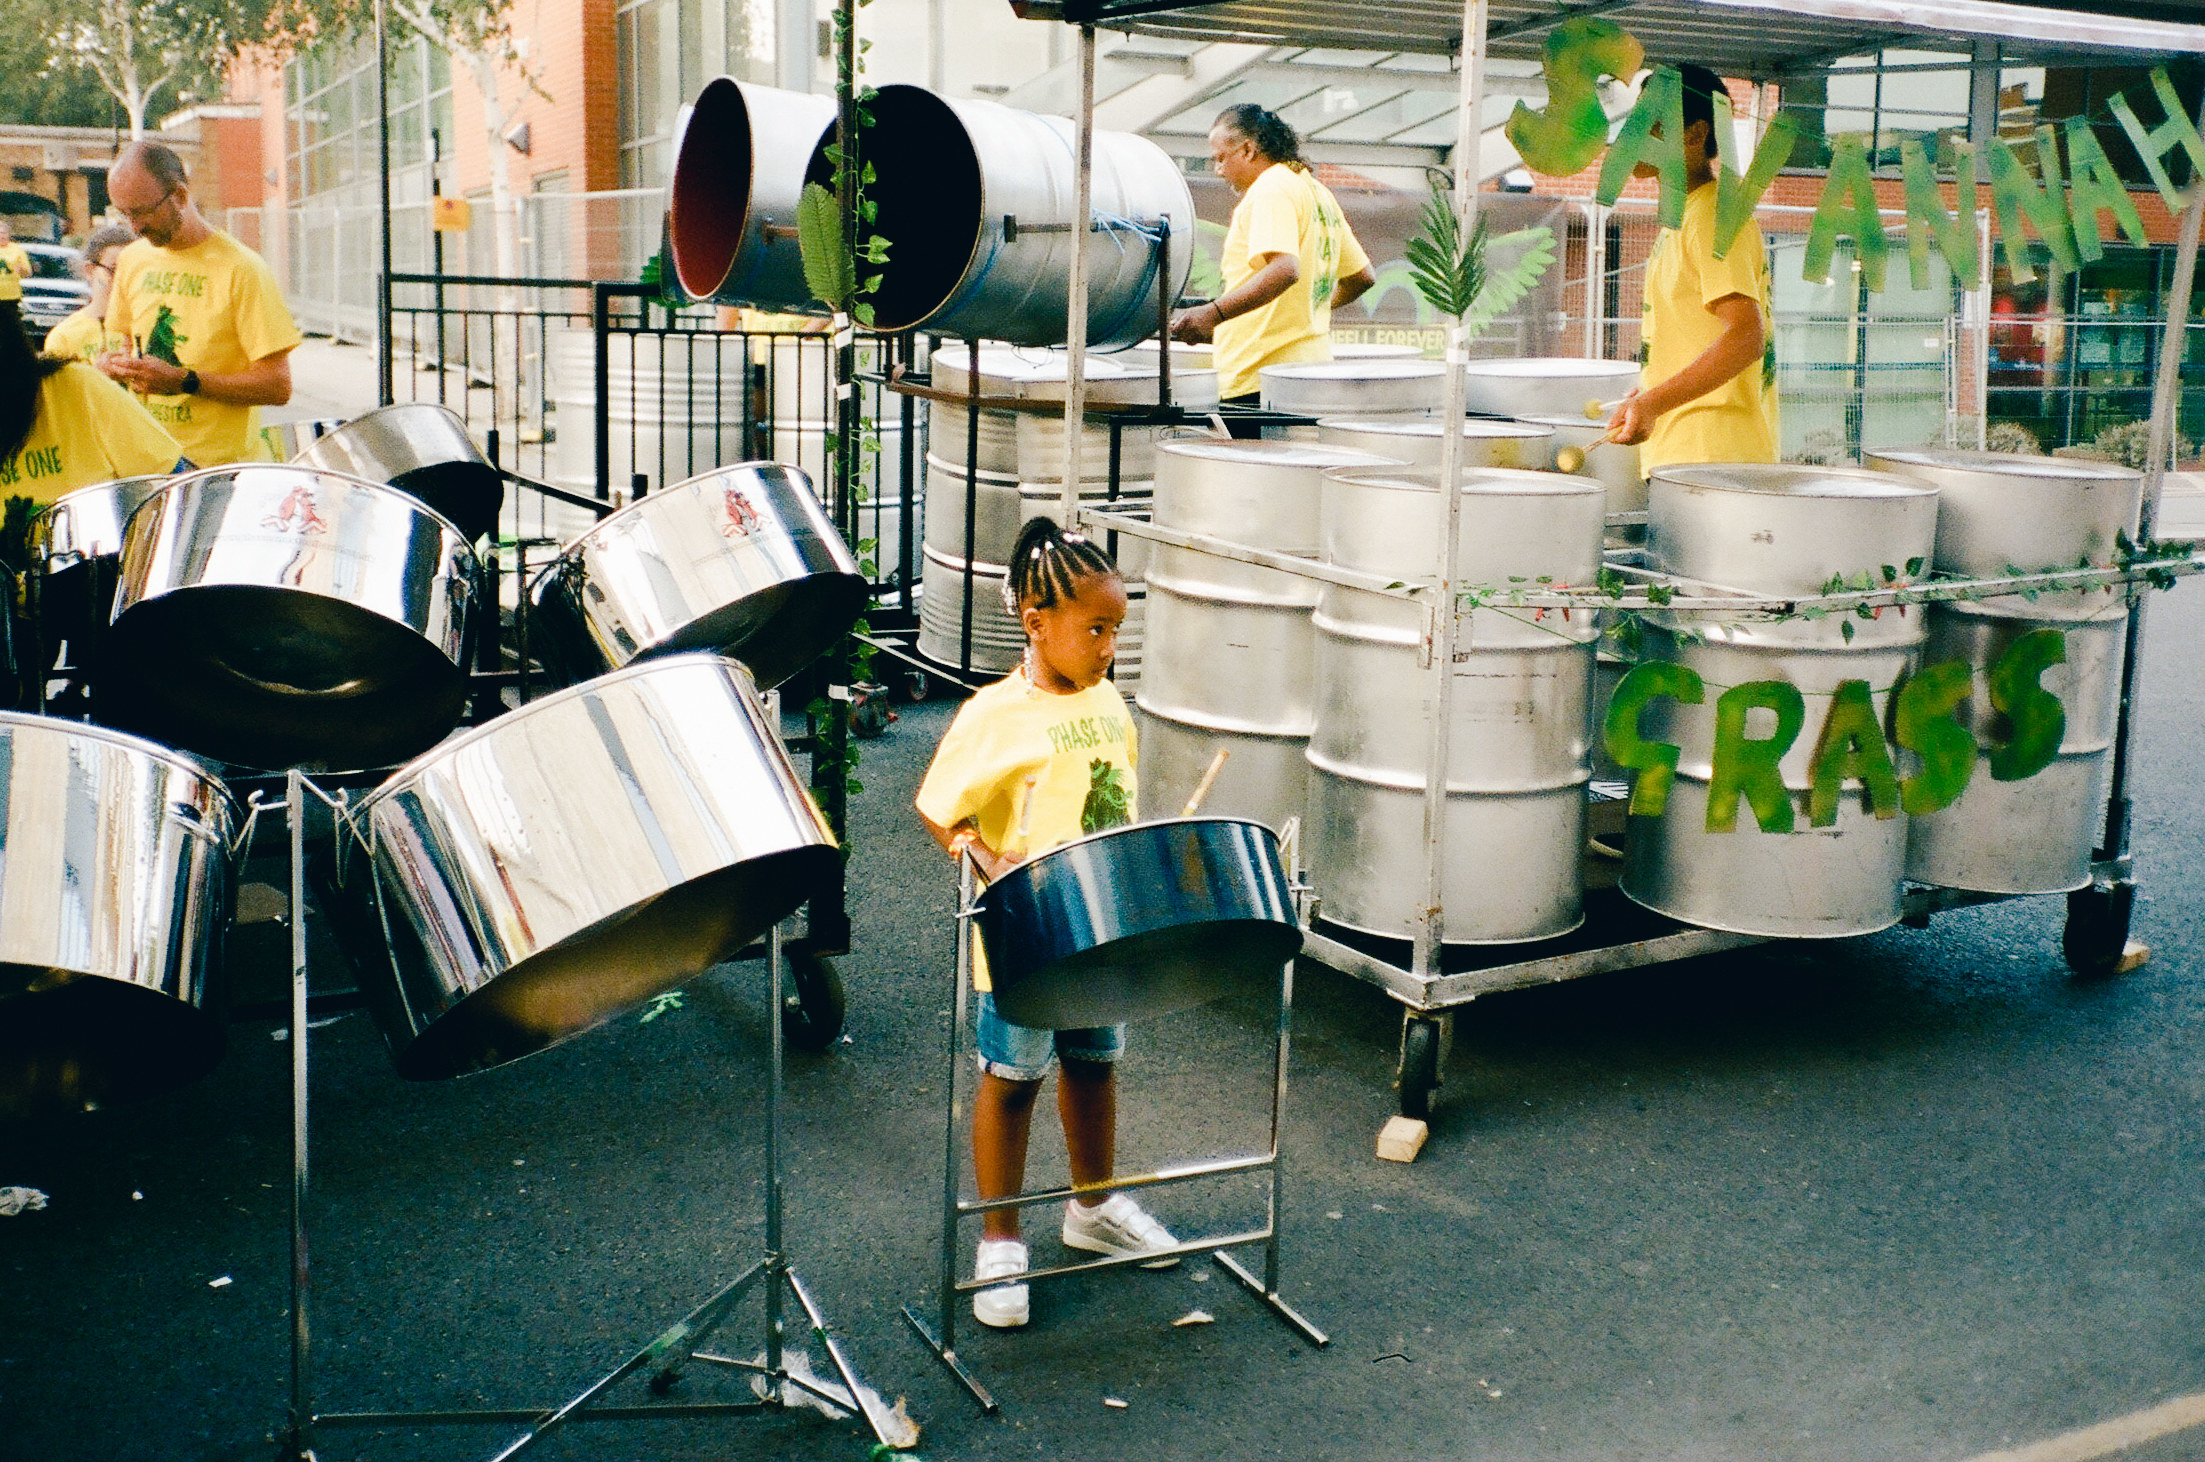 A young girl in front of steel drums at Notting Hill Carnival